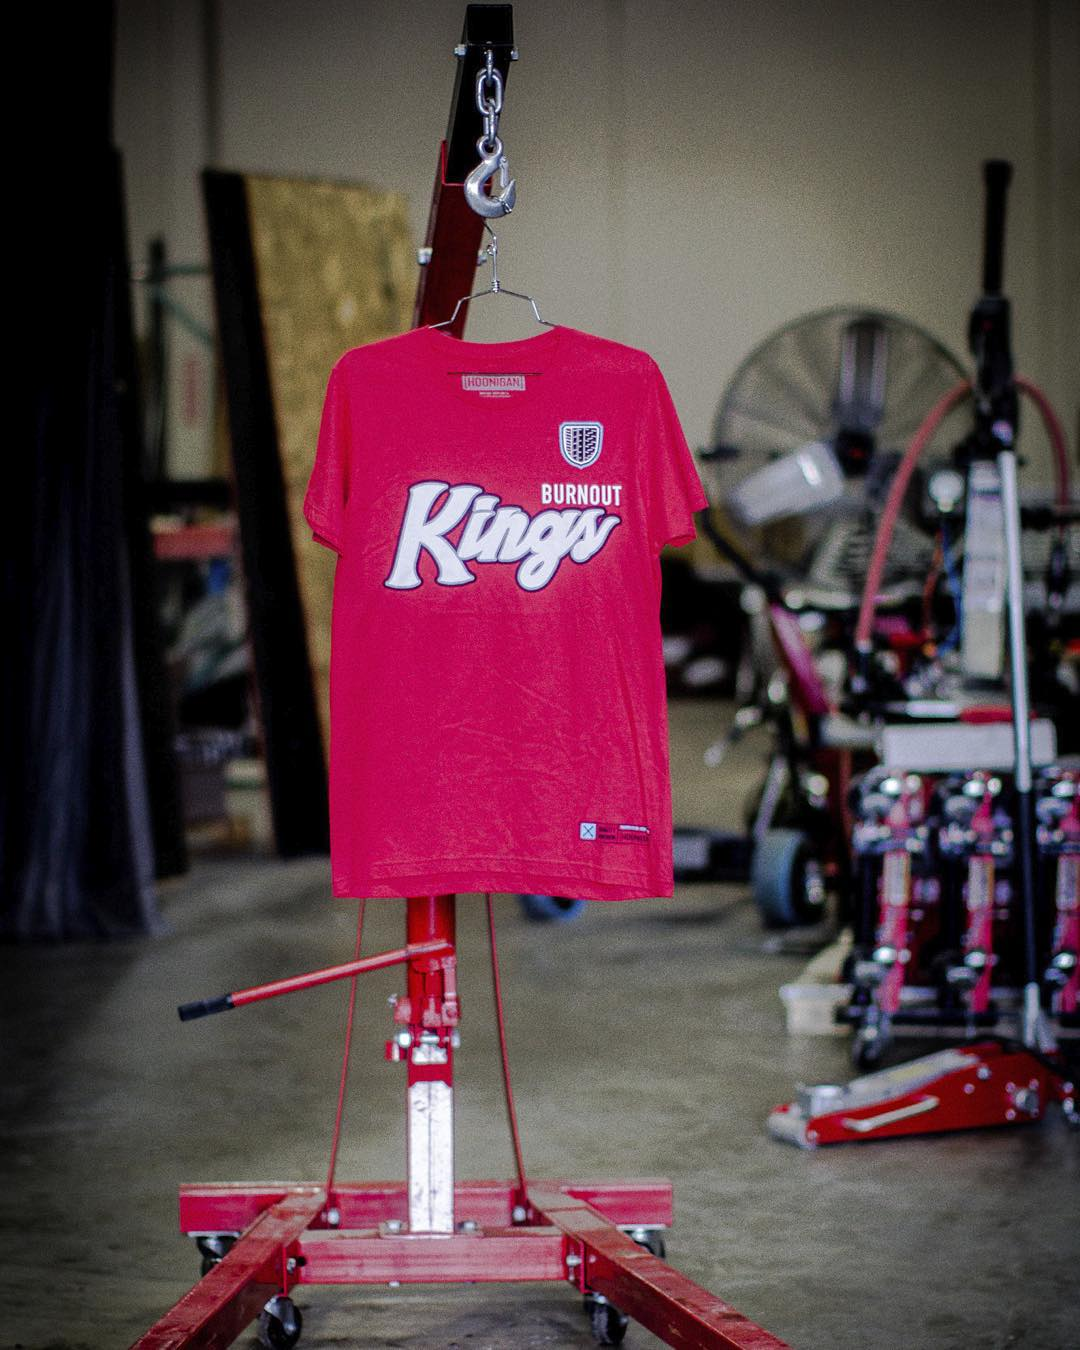 The #HNGN #DonutGarage engine hoist, not currently in use. That won't last long, kinda like this red #BurnoutKings Tee - available on #hooniganDOTcom. #breakallthethings #motorsaredisposableright #rangerproducts